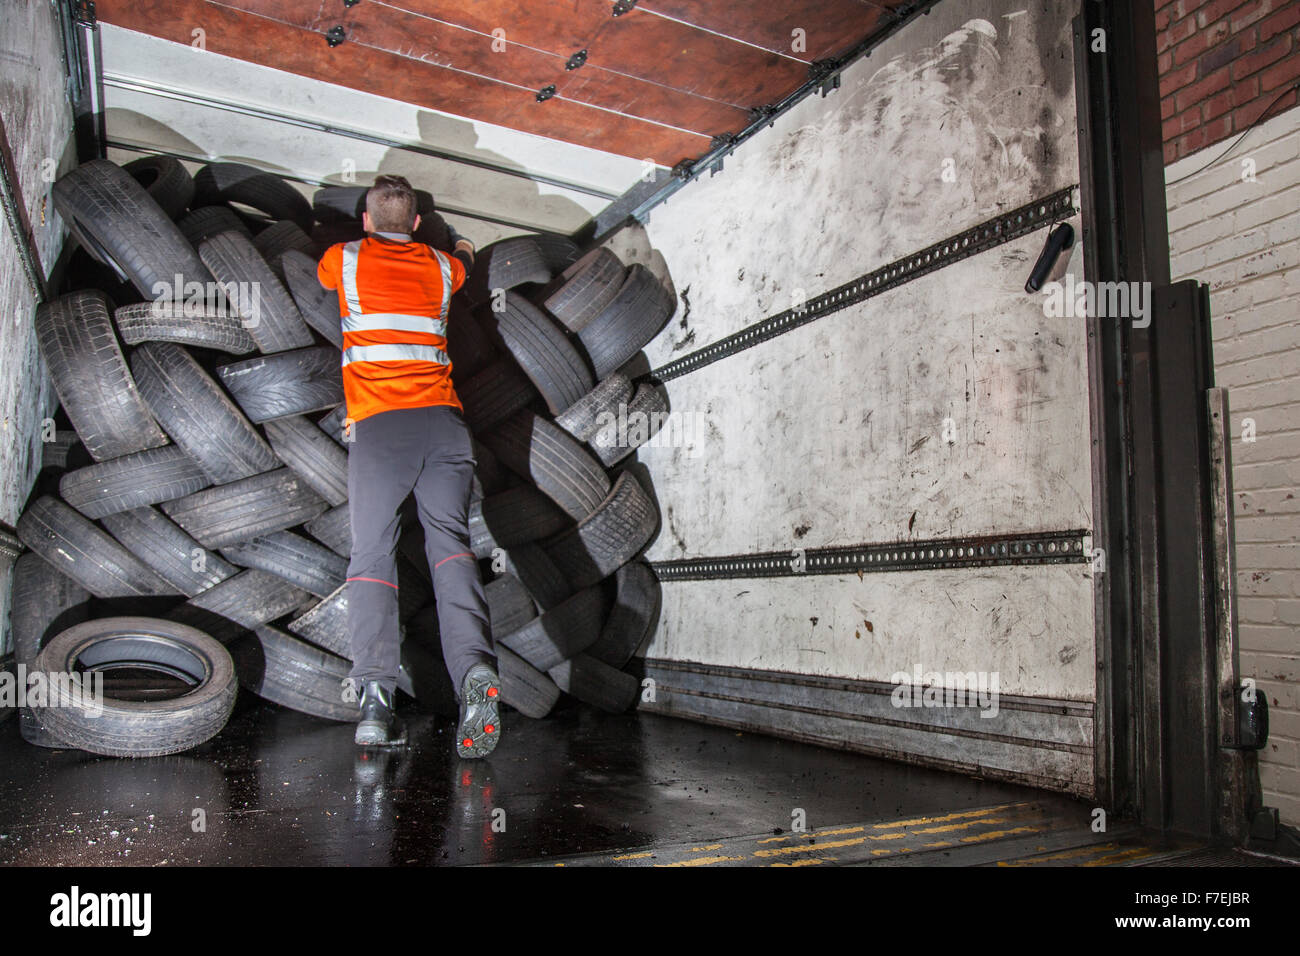 Loading used tyres for disposal, deliveries, delivery. Merseyside, UK 30th November, 2015.  Businesses such as garages - Stock Image